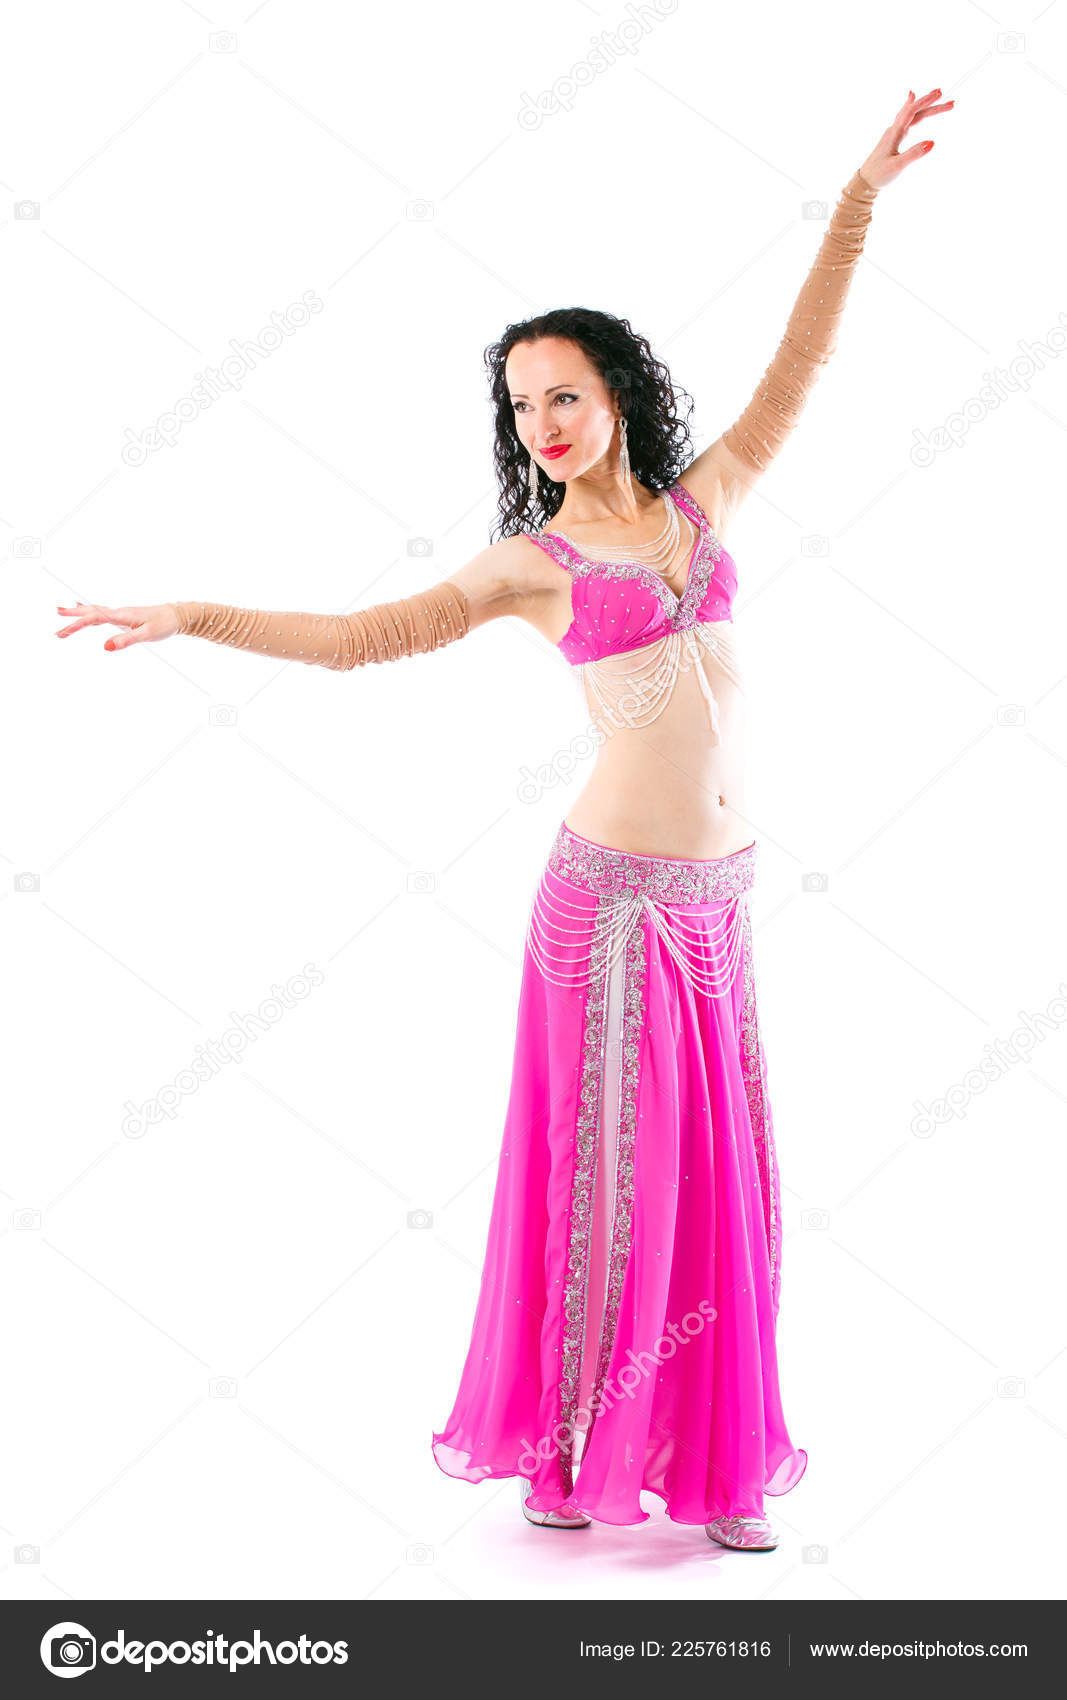 a48a5e7162f0 Wonderful brunette in the pink dress of an oriental dancer. Professional  shooting of a young beautiful girl in the costume of an oriental dancer.